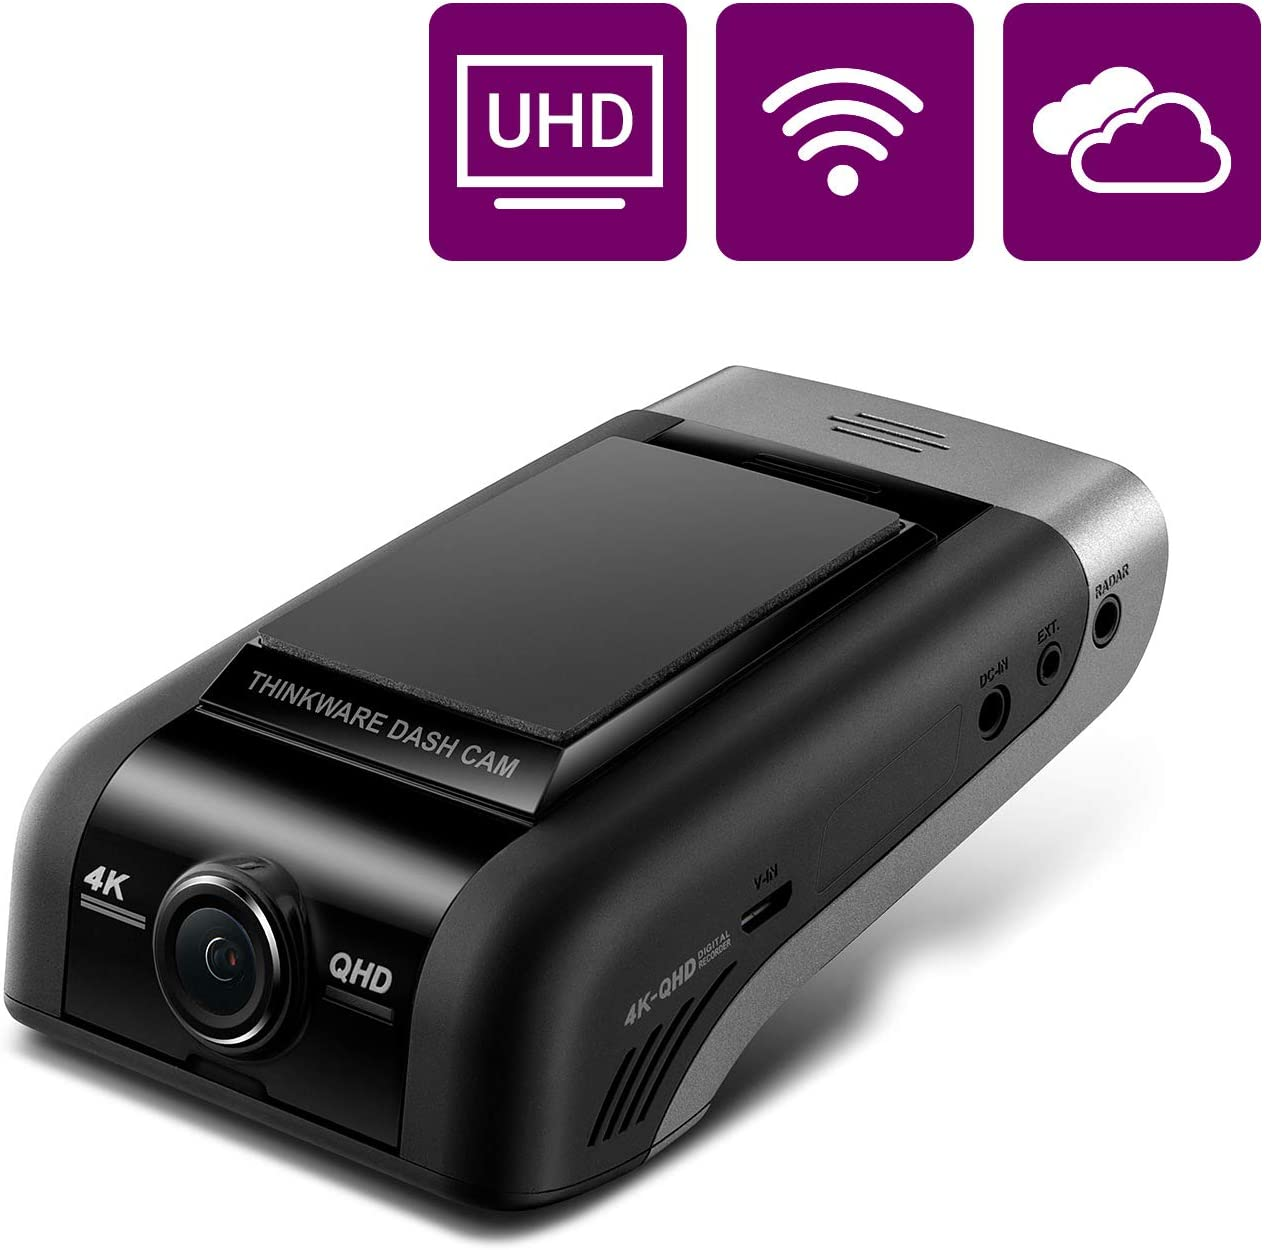 THINKWARE U1000 4k Dash Cam UHD 3840X2160, 150° Wide Angle Dashboard Camera Recorder with G-Sensor, Car Camera w/Sony Sensor, Parking Mode, WiFi GPS, Night Vision, Loop Recording, Cloud Enabled